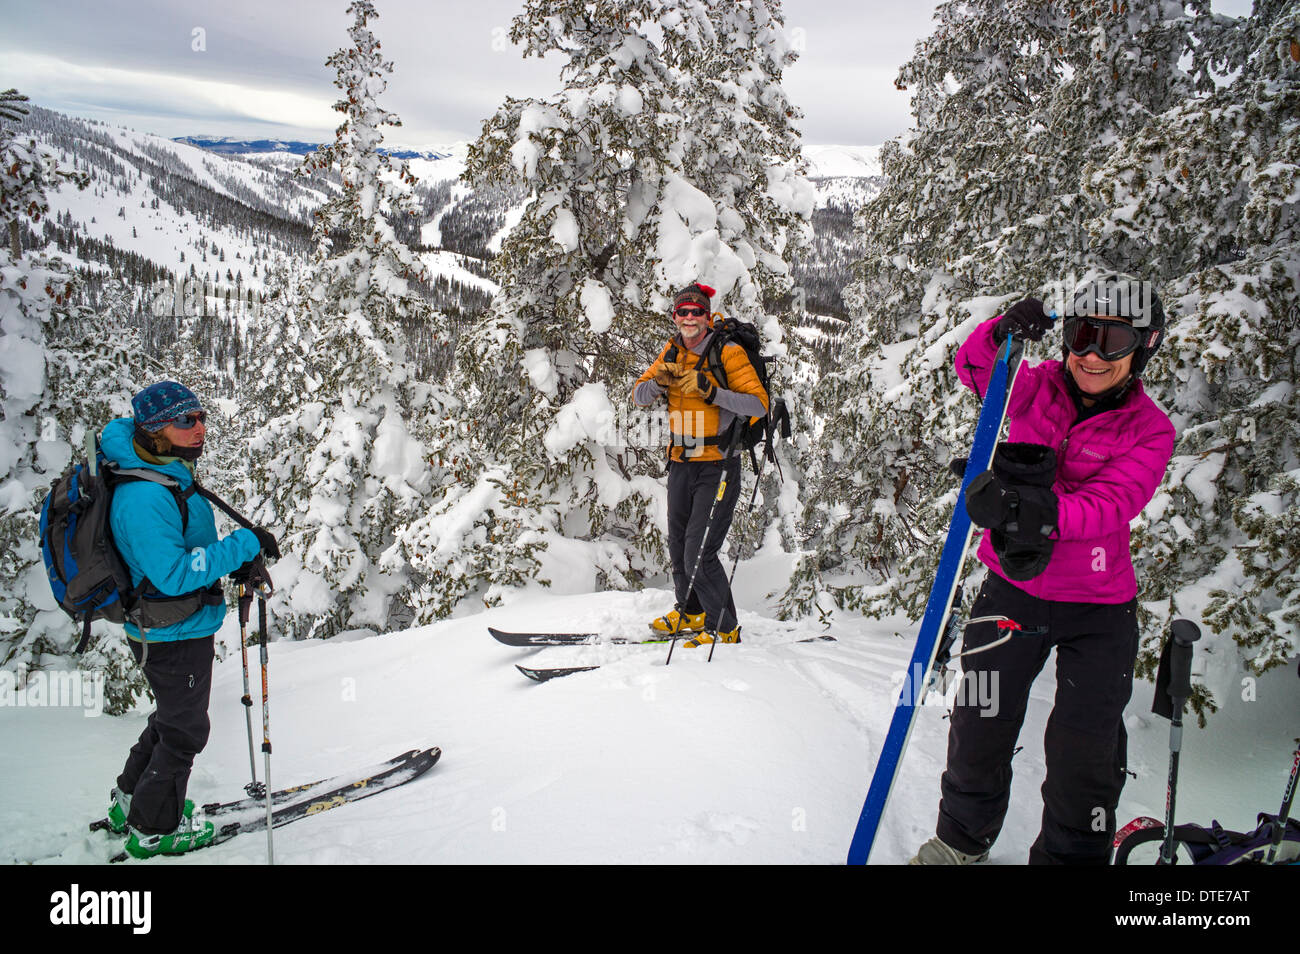 Back country skiers preparing for a downhill run near Monarch Pass, central Colorado, USA - Stock Image